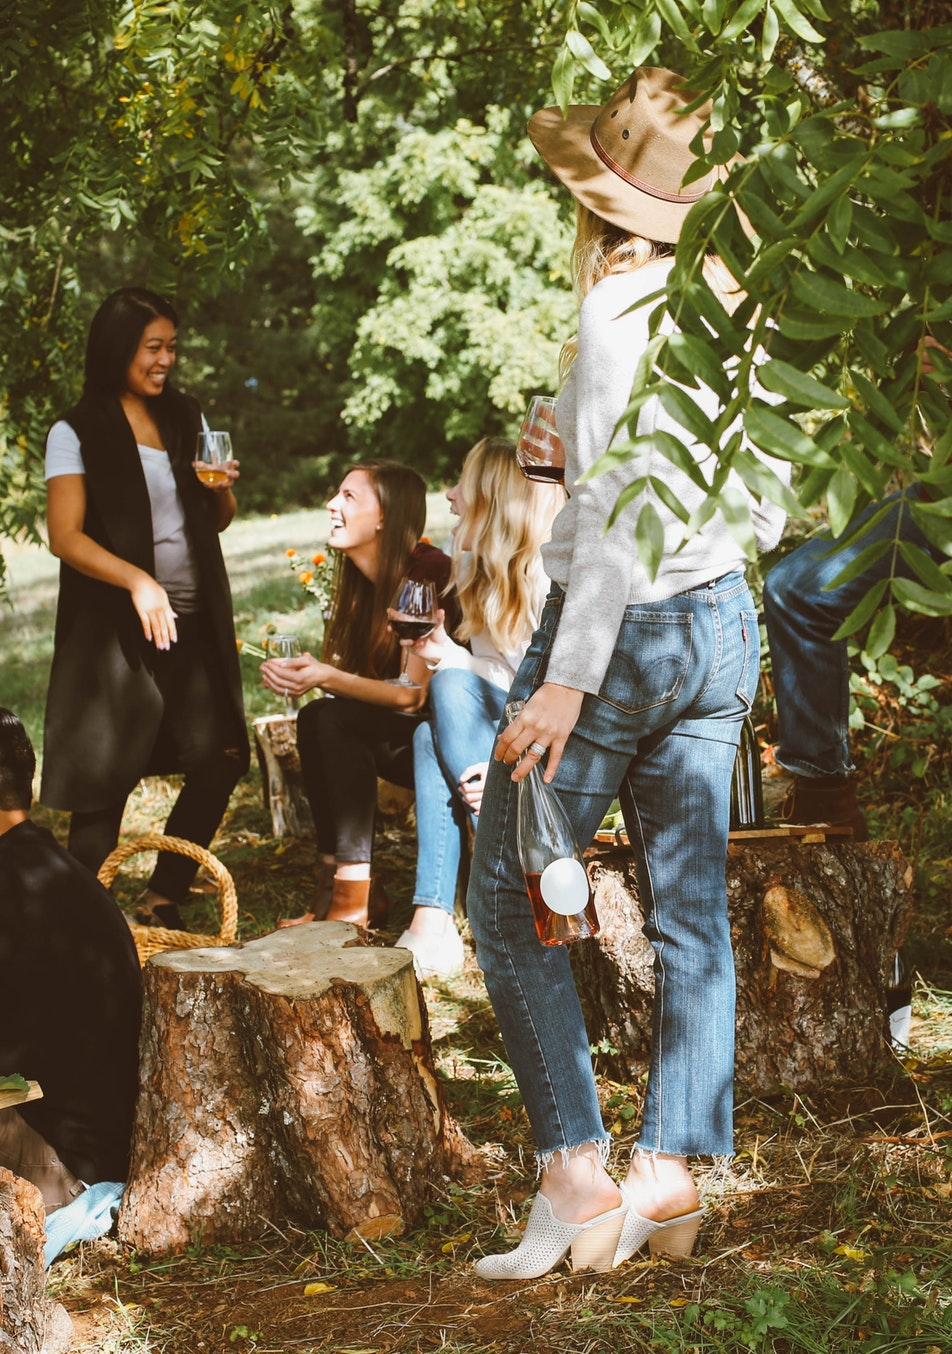 Epic Ways to Prepare Your Backyard For Summer Parties